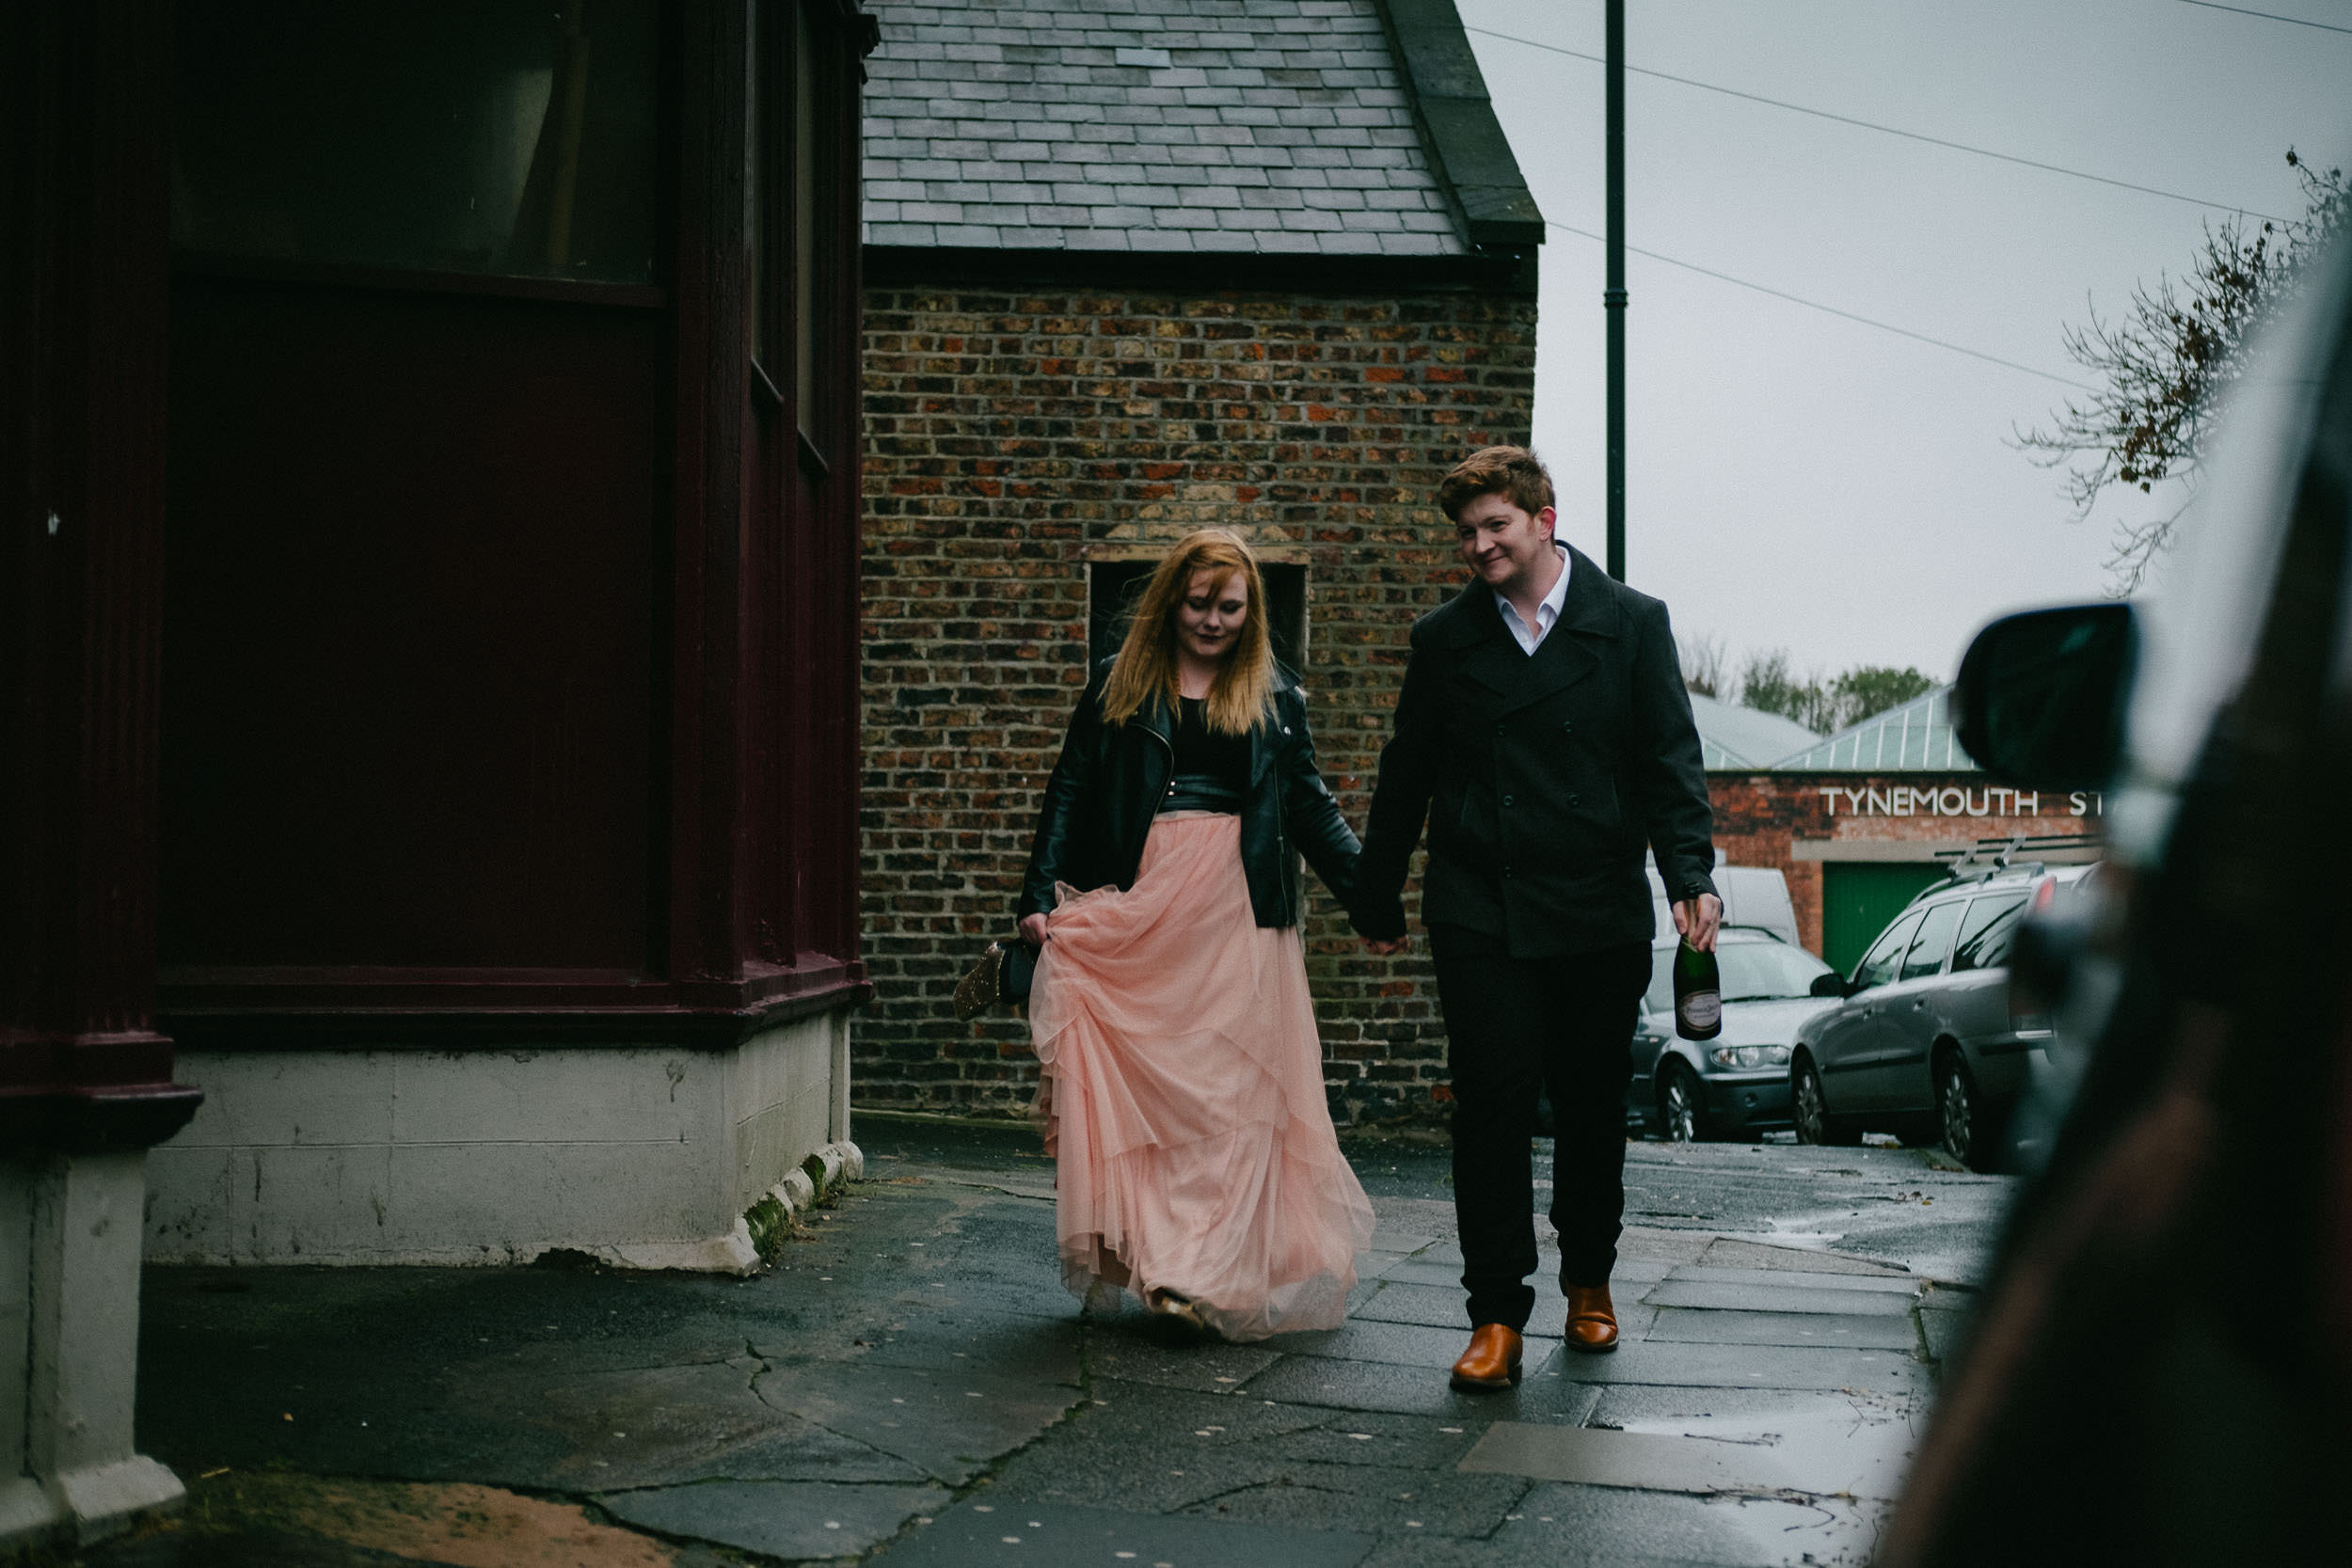 Couple walk through the rainy streets of Tynemouth holding a champagne bottle